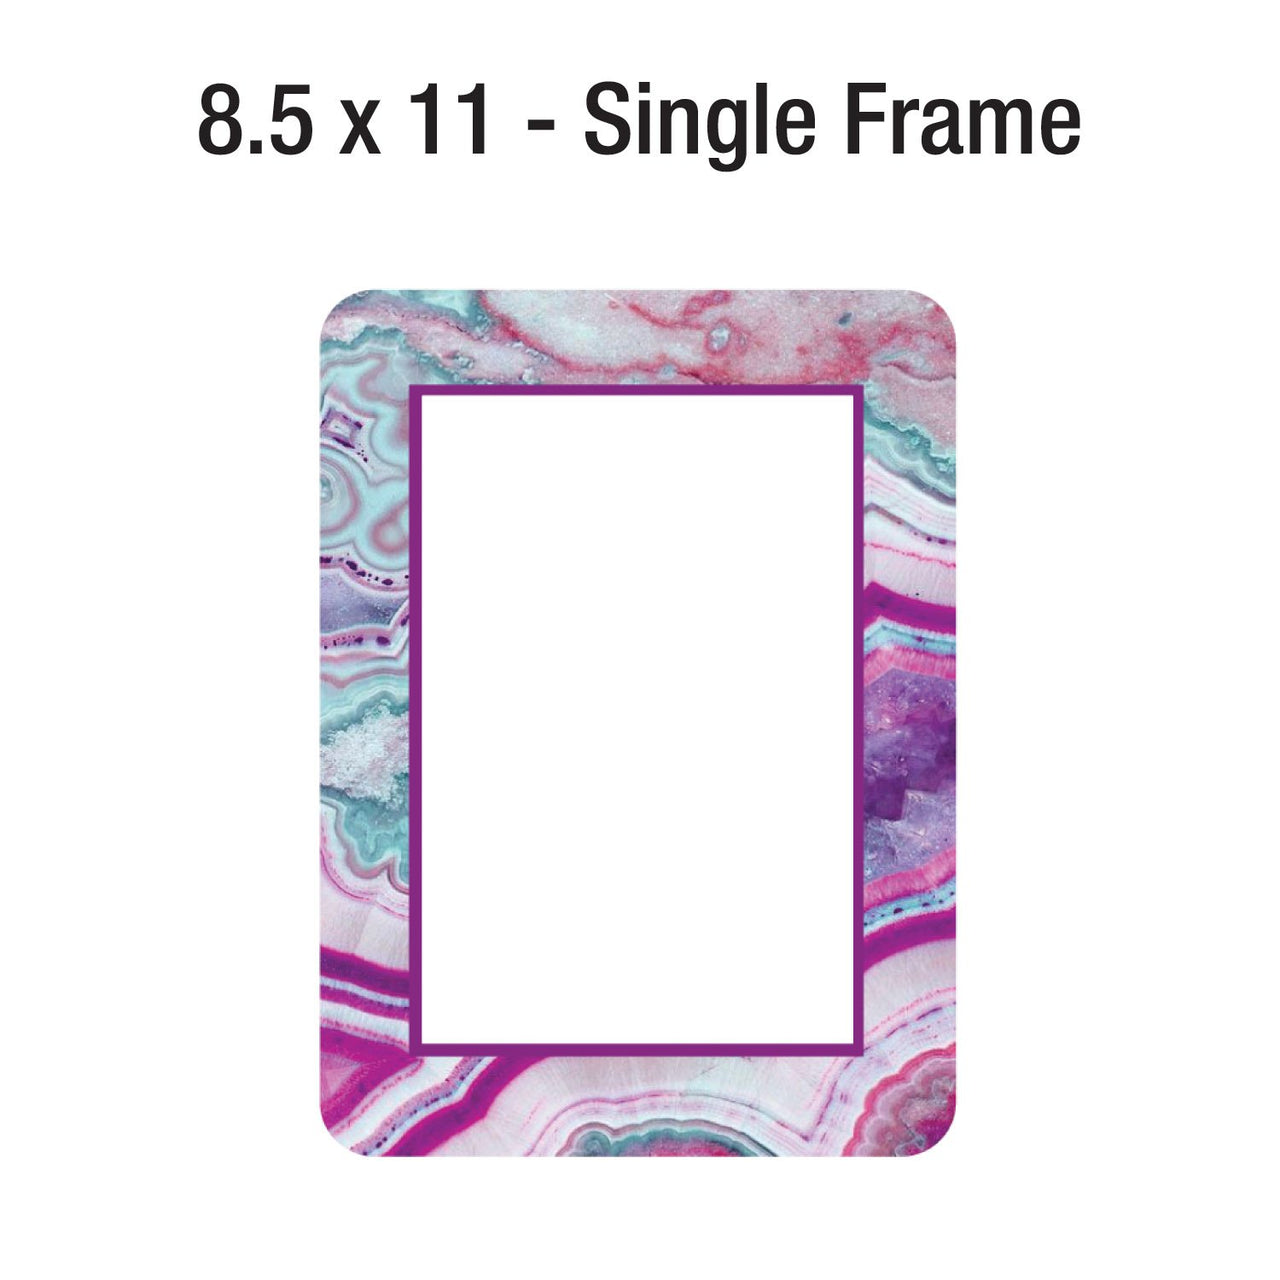 NEW DESIGNS! Multi-Pack of Self-Stick Picture Frames in Agate Patterns